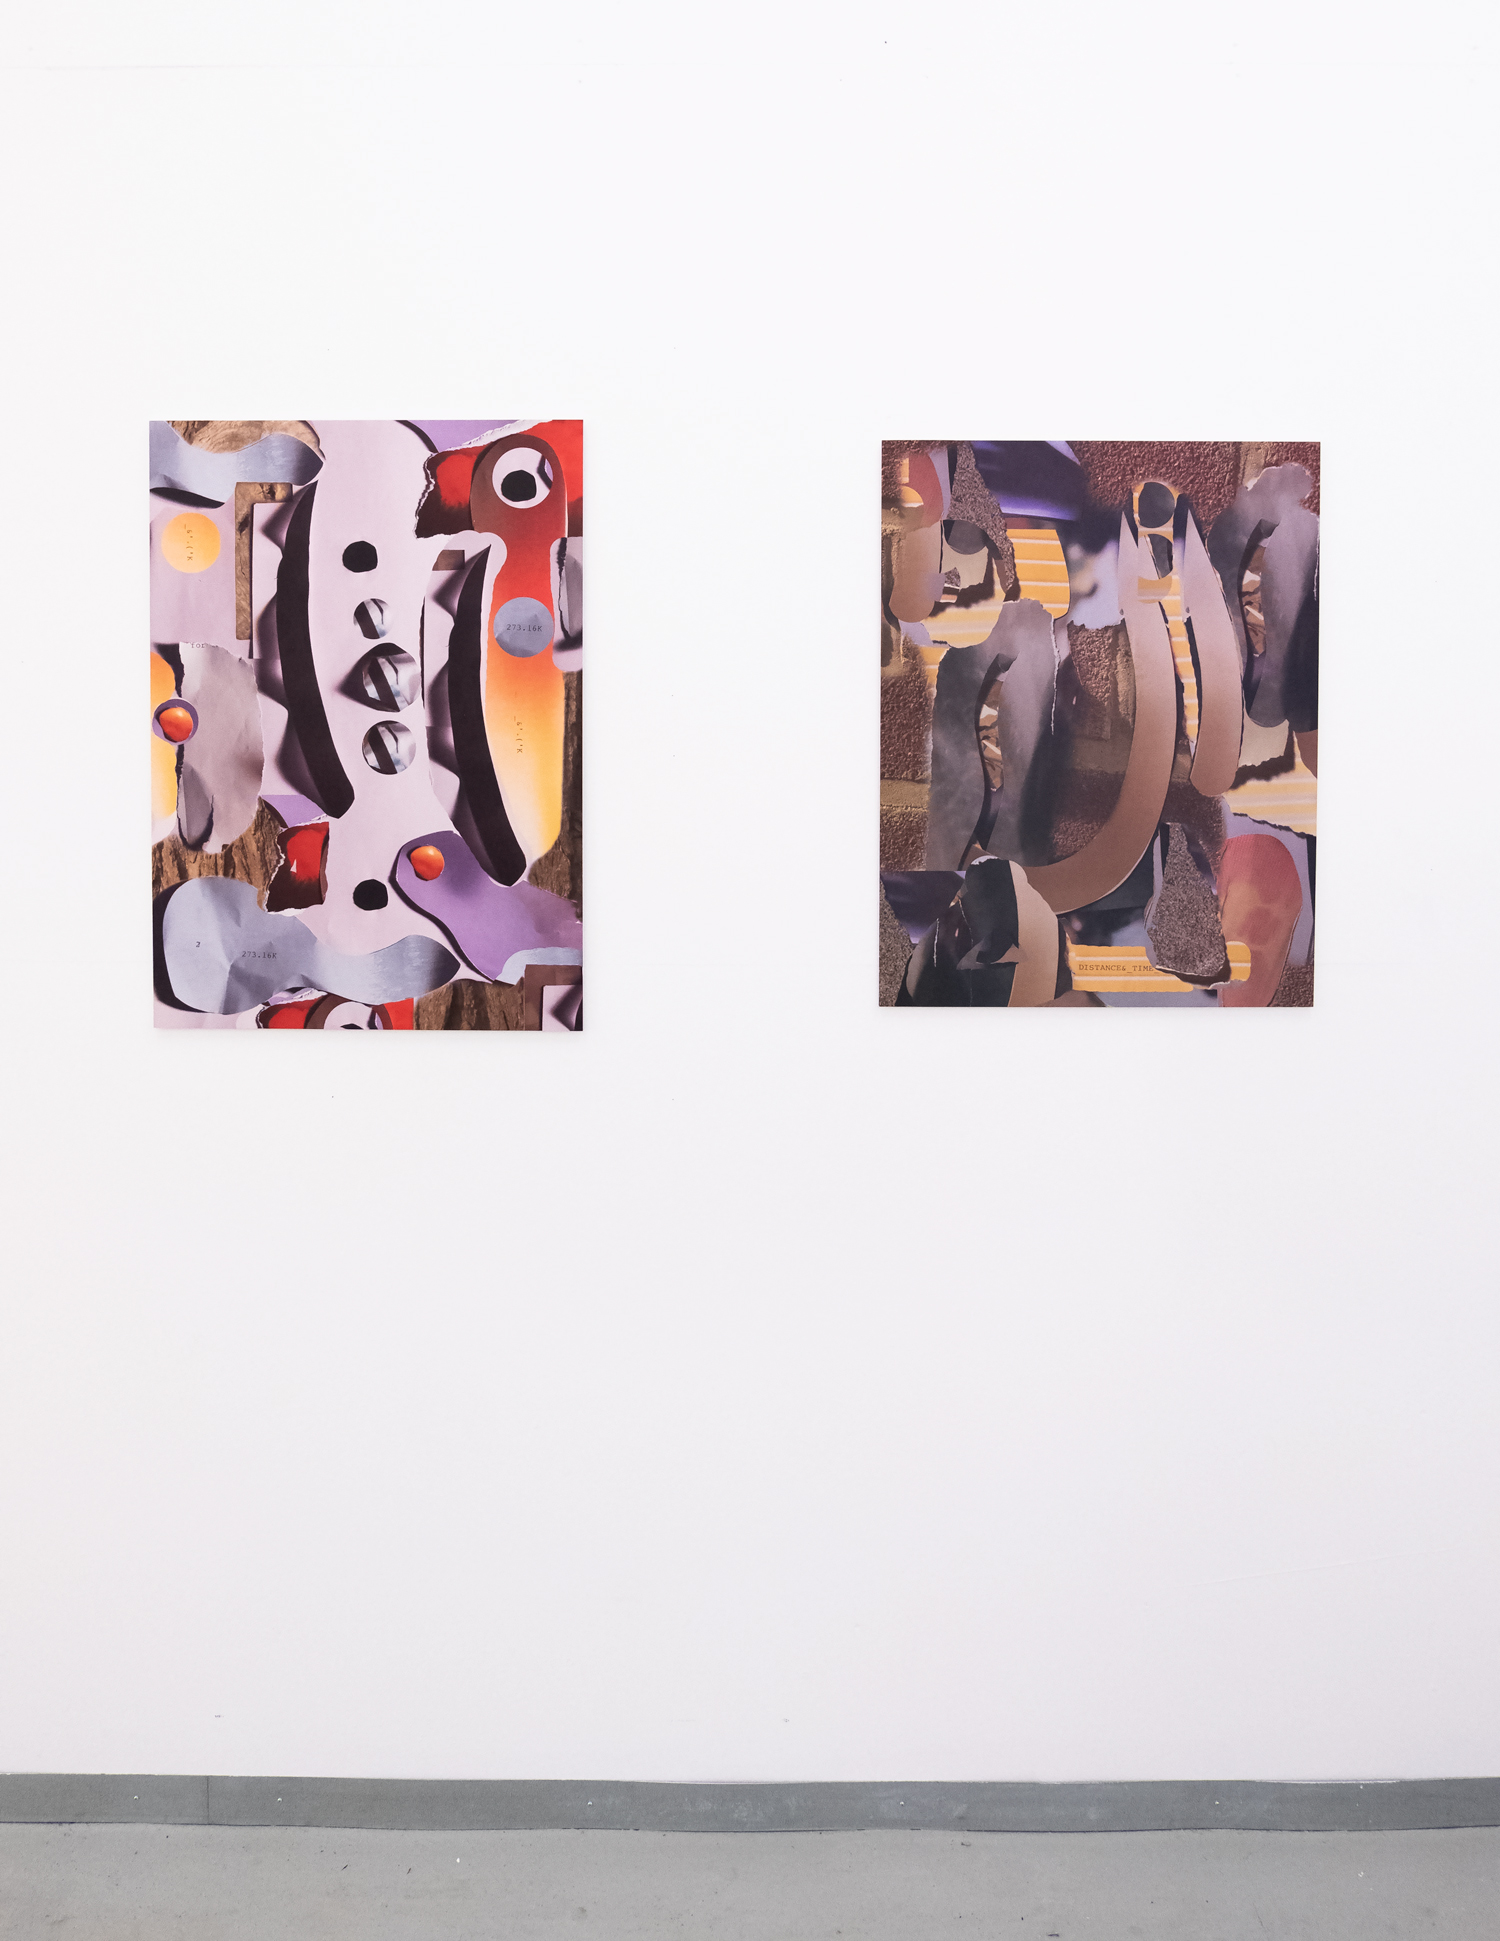 FOPDTMM _ #13  (left)  FOPDTMM_#4  (Rright) Elephant Magazine Summer Exhibition, Elephant West, White City, 2019